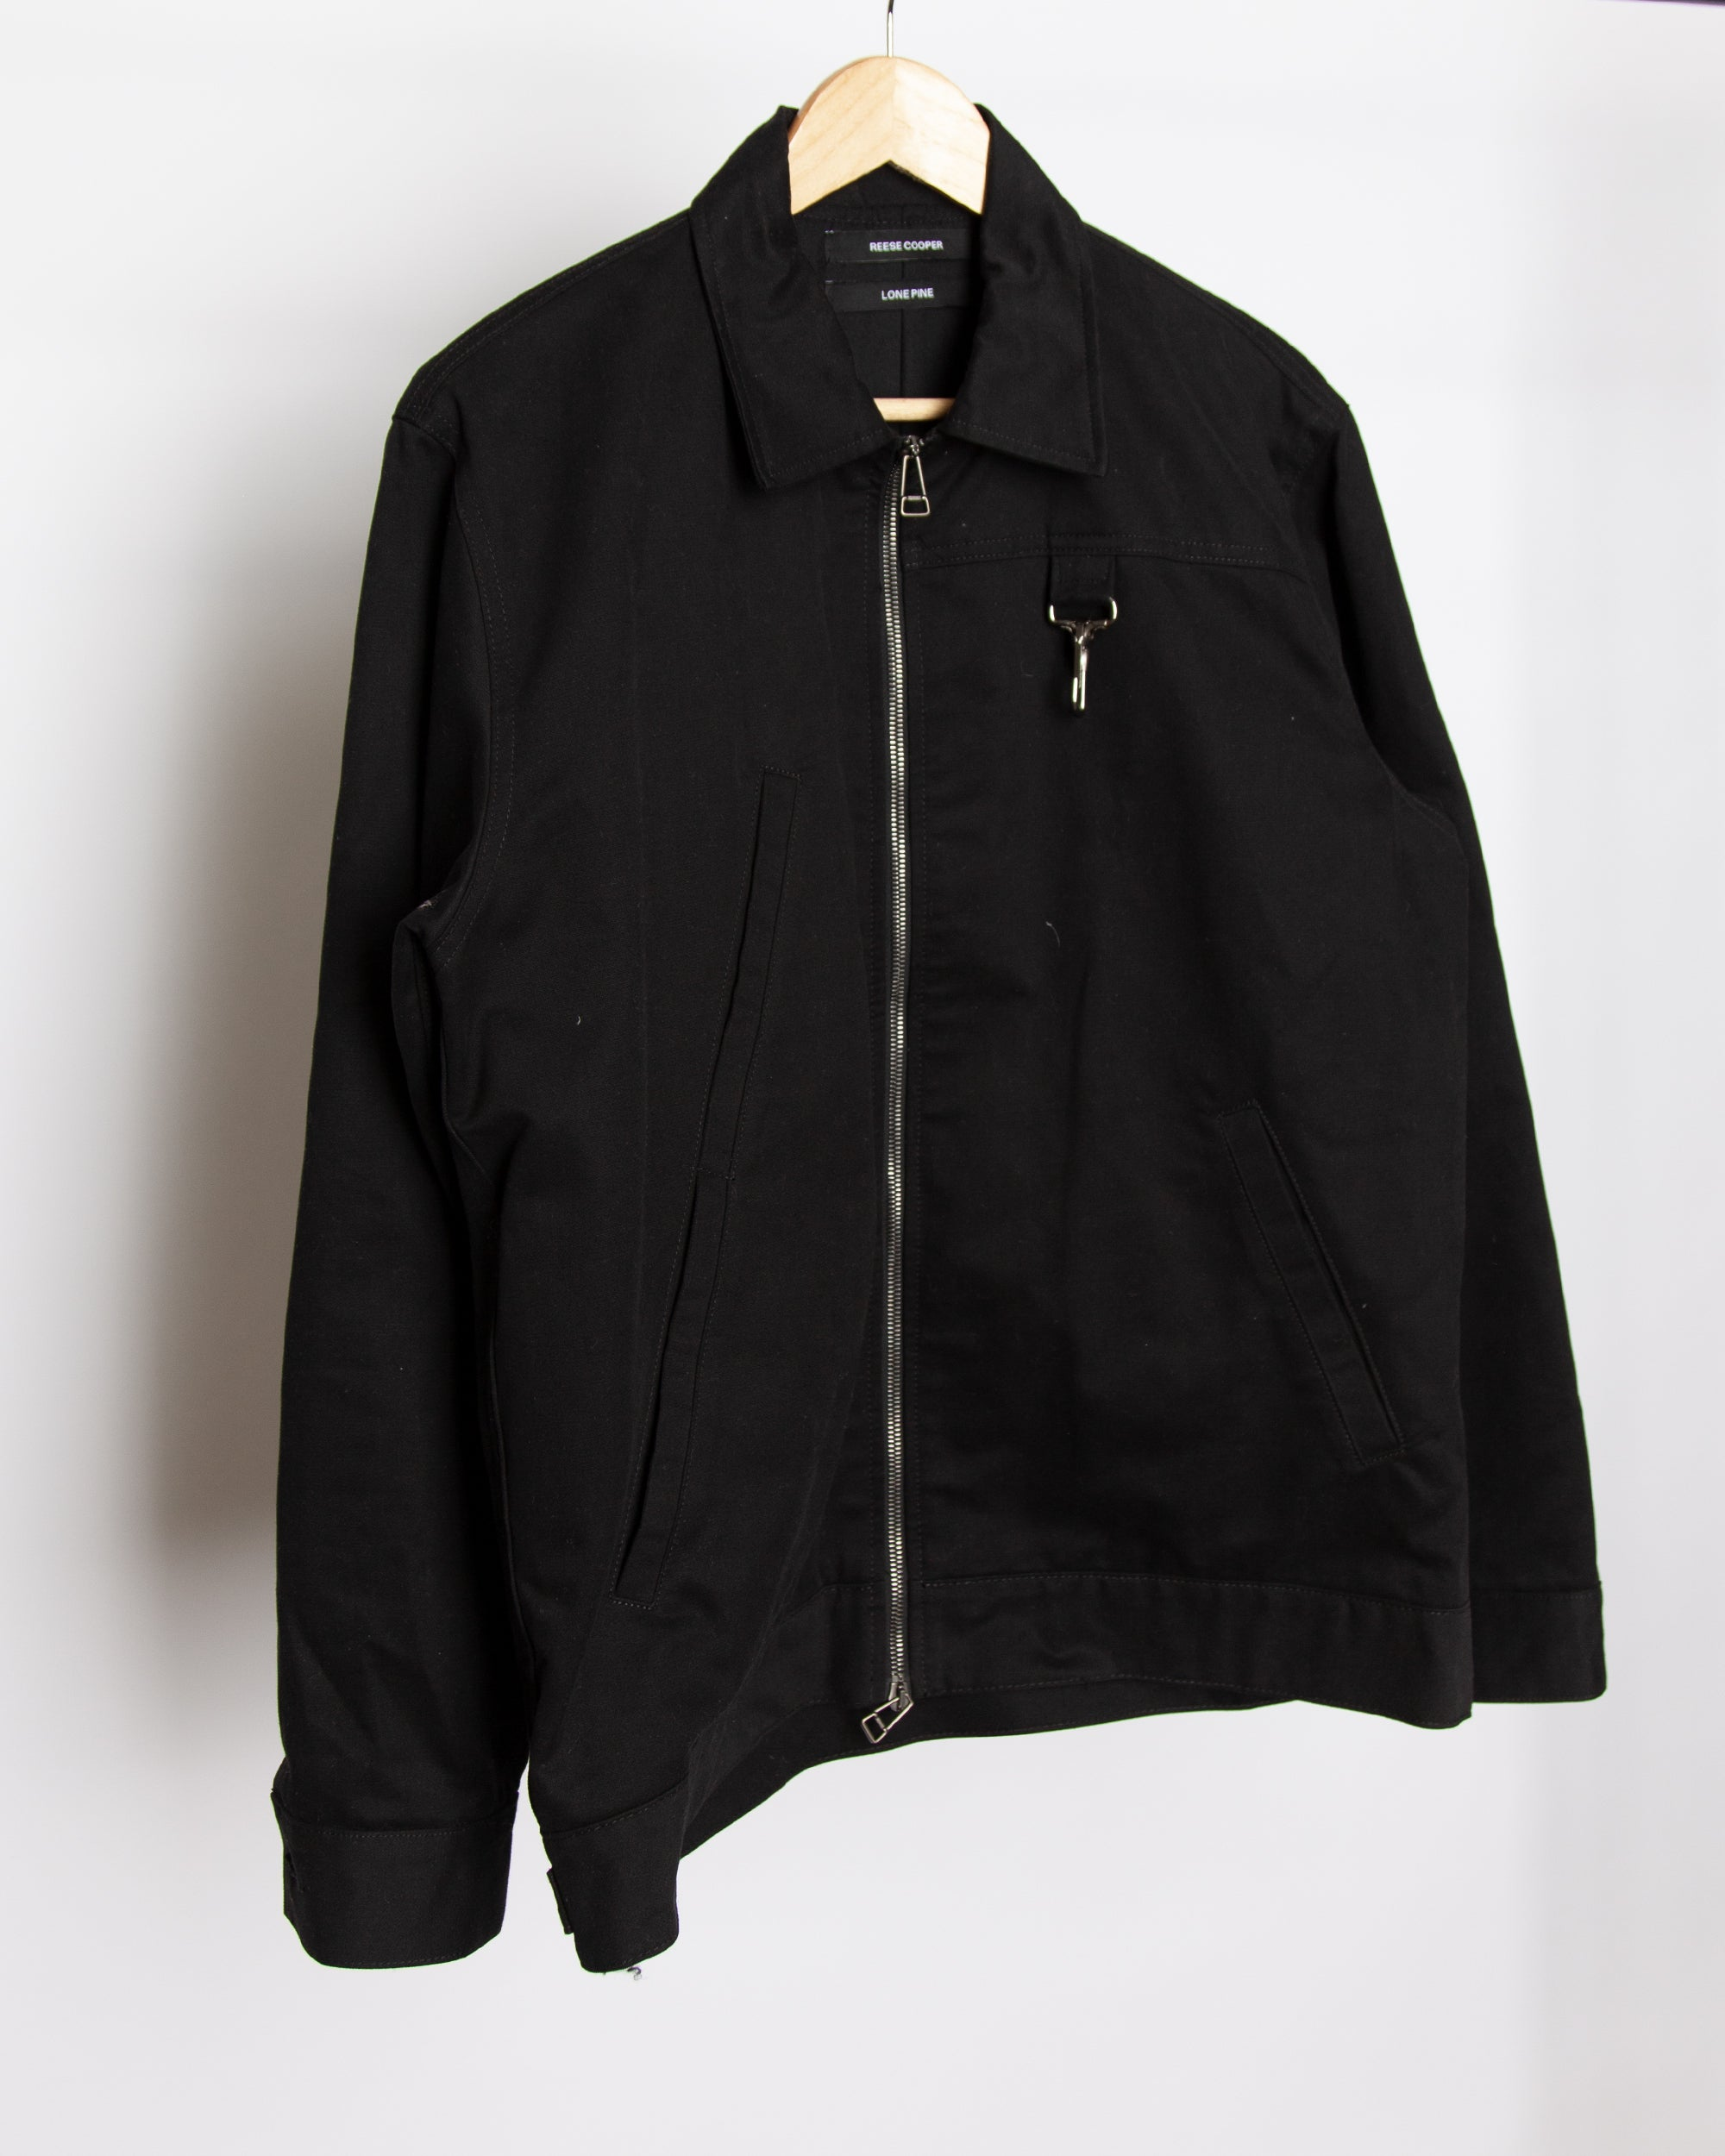 Lone Pine - Patches Work Jacket in Black